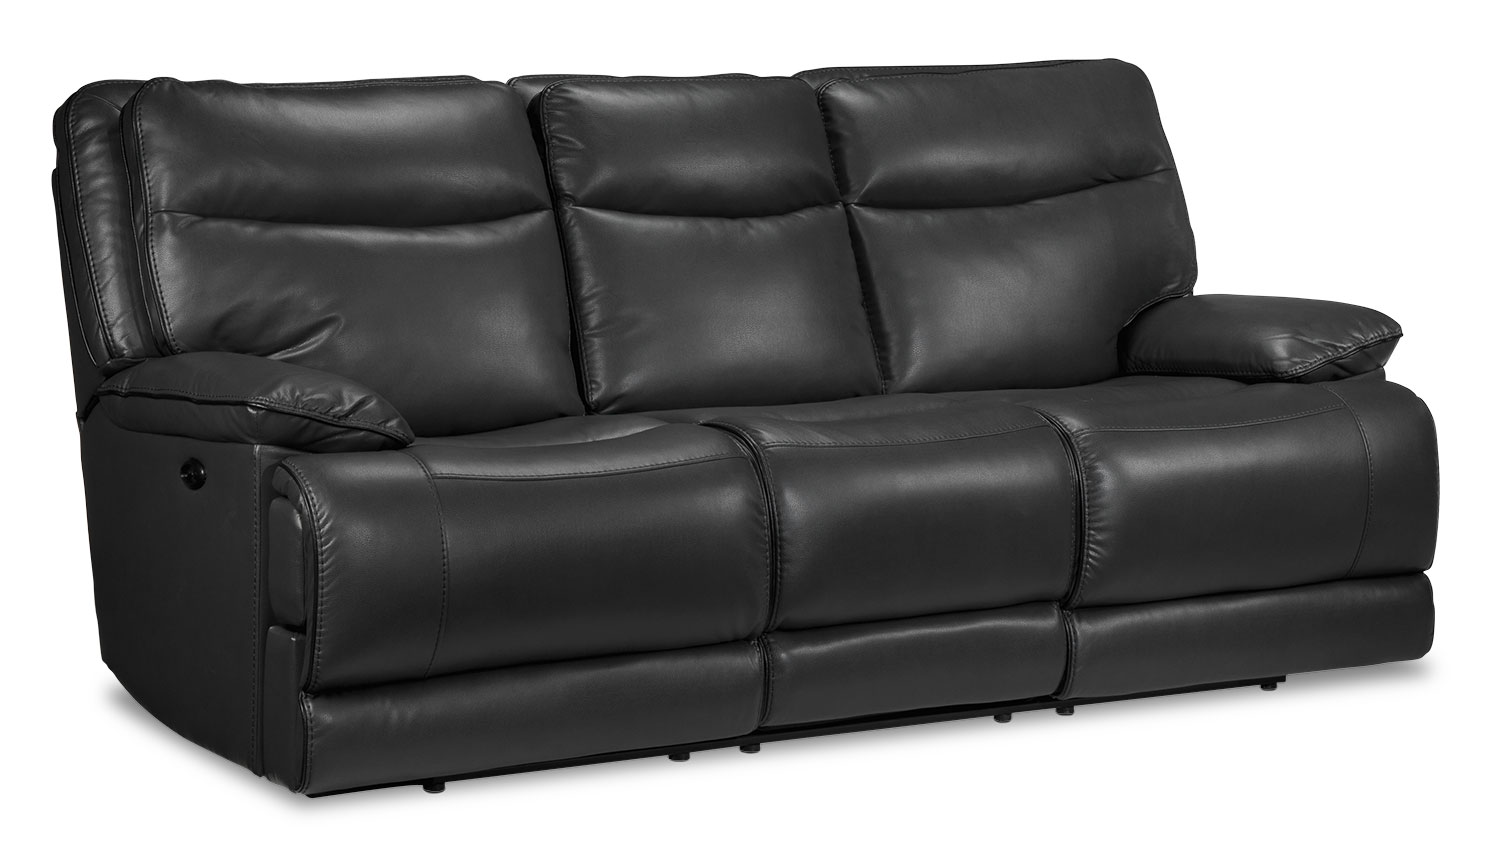 Lanette Power Reclining Sofa - Smoke Grey